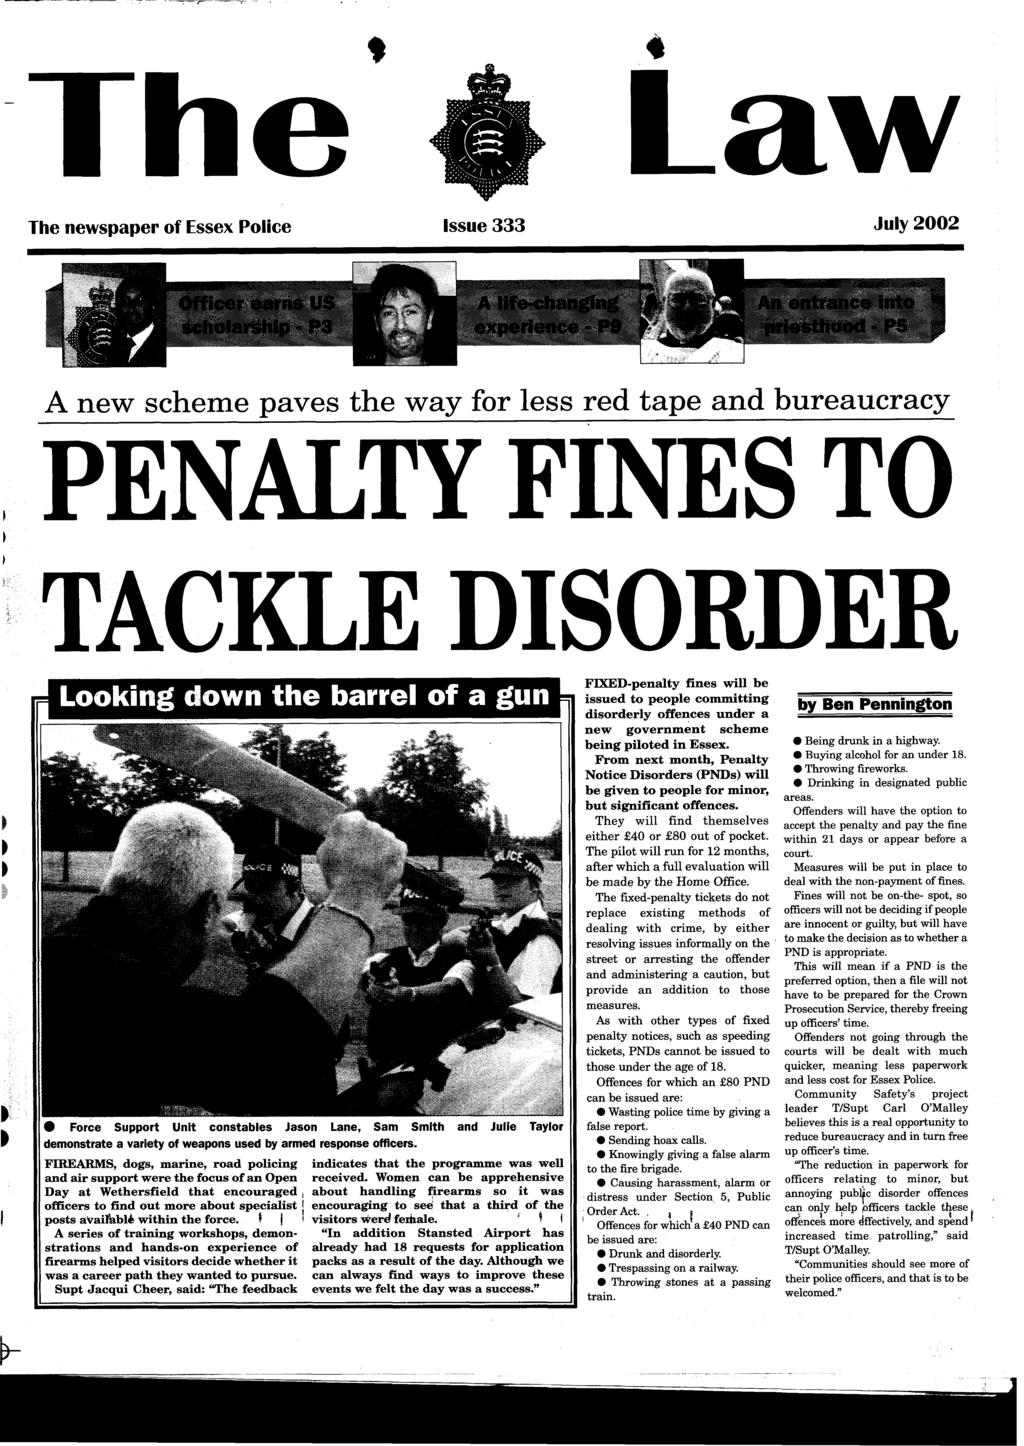 Law The Penalty Fines To Tackle Disorder A New Scheme Paves Tina Can Present 3d View Of Circuit Board Press Rightmost Newspaper Essex Poice Ssue 333 Juy 2002